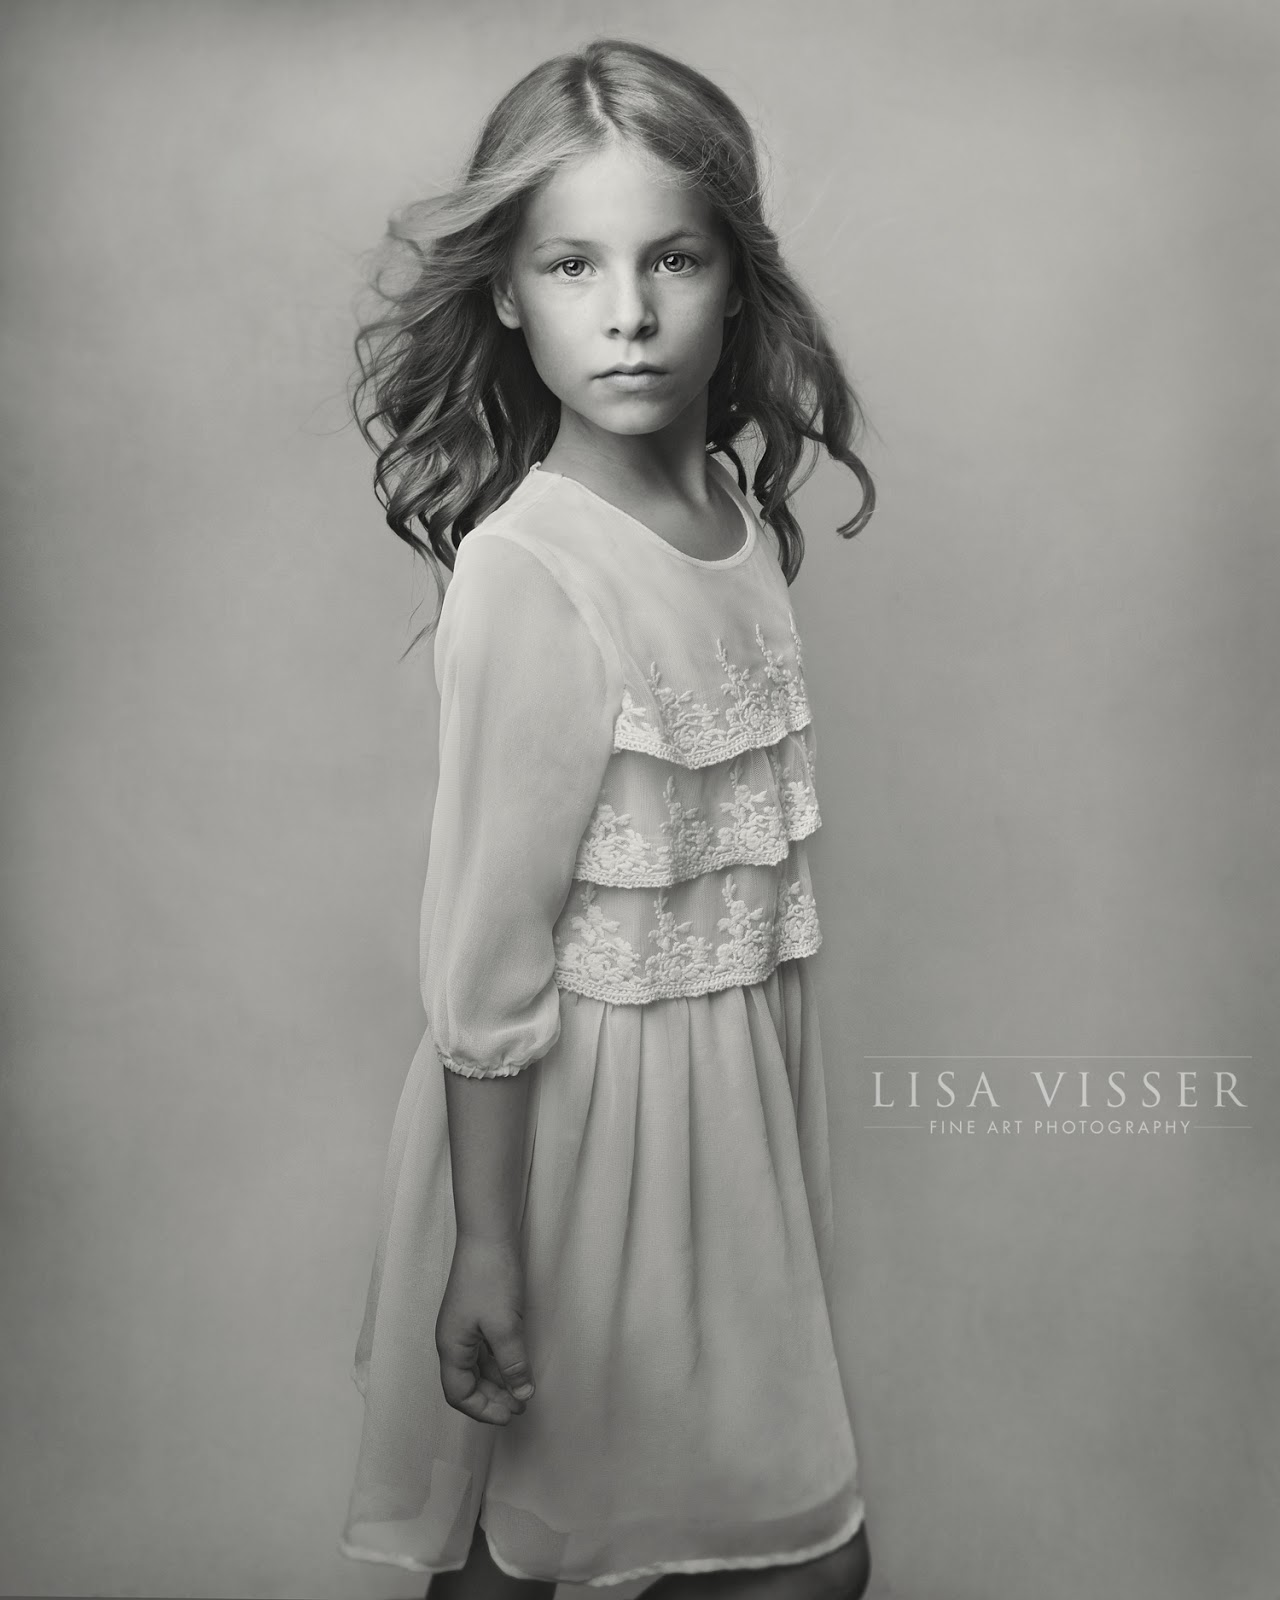 Childrens black white and fine art portrait photography a selection of images from last year imogen matilda poppy and india